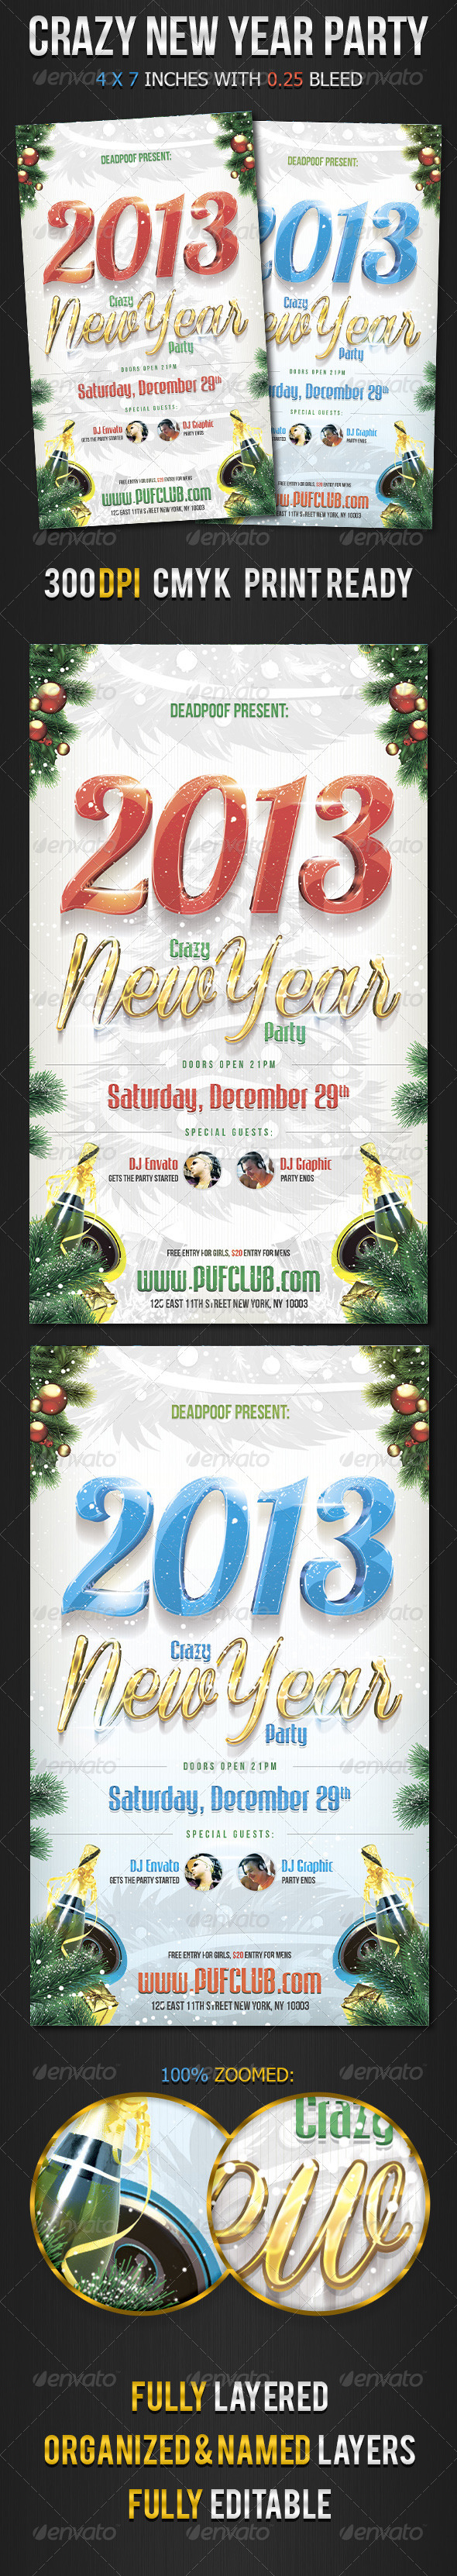 GraphicRiver Crazy New Year Party Flyer 3358142